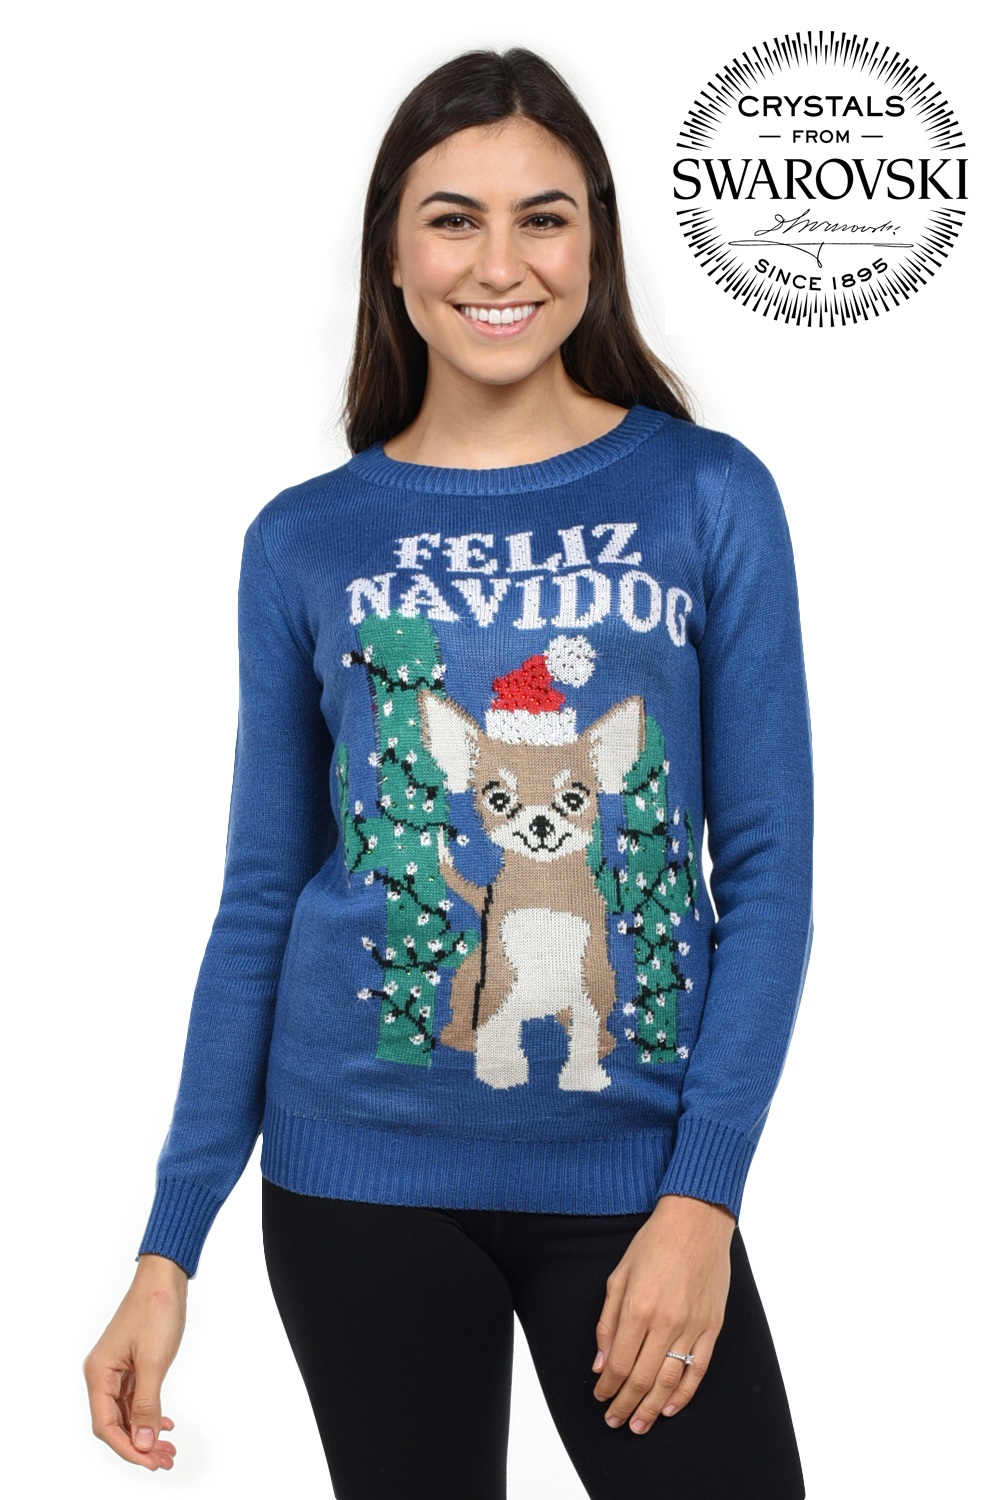 Would you buy this ugly $30,000 Christmas sweater? - Vogue Australia